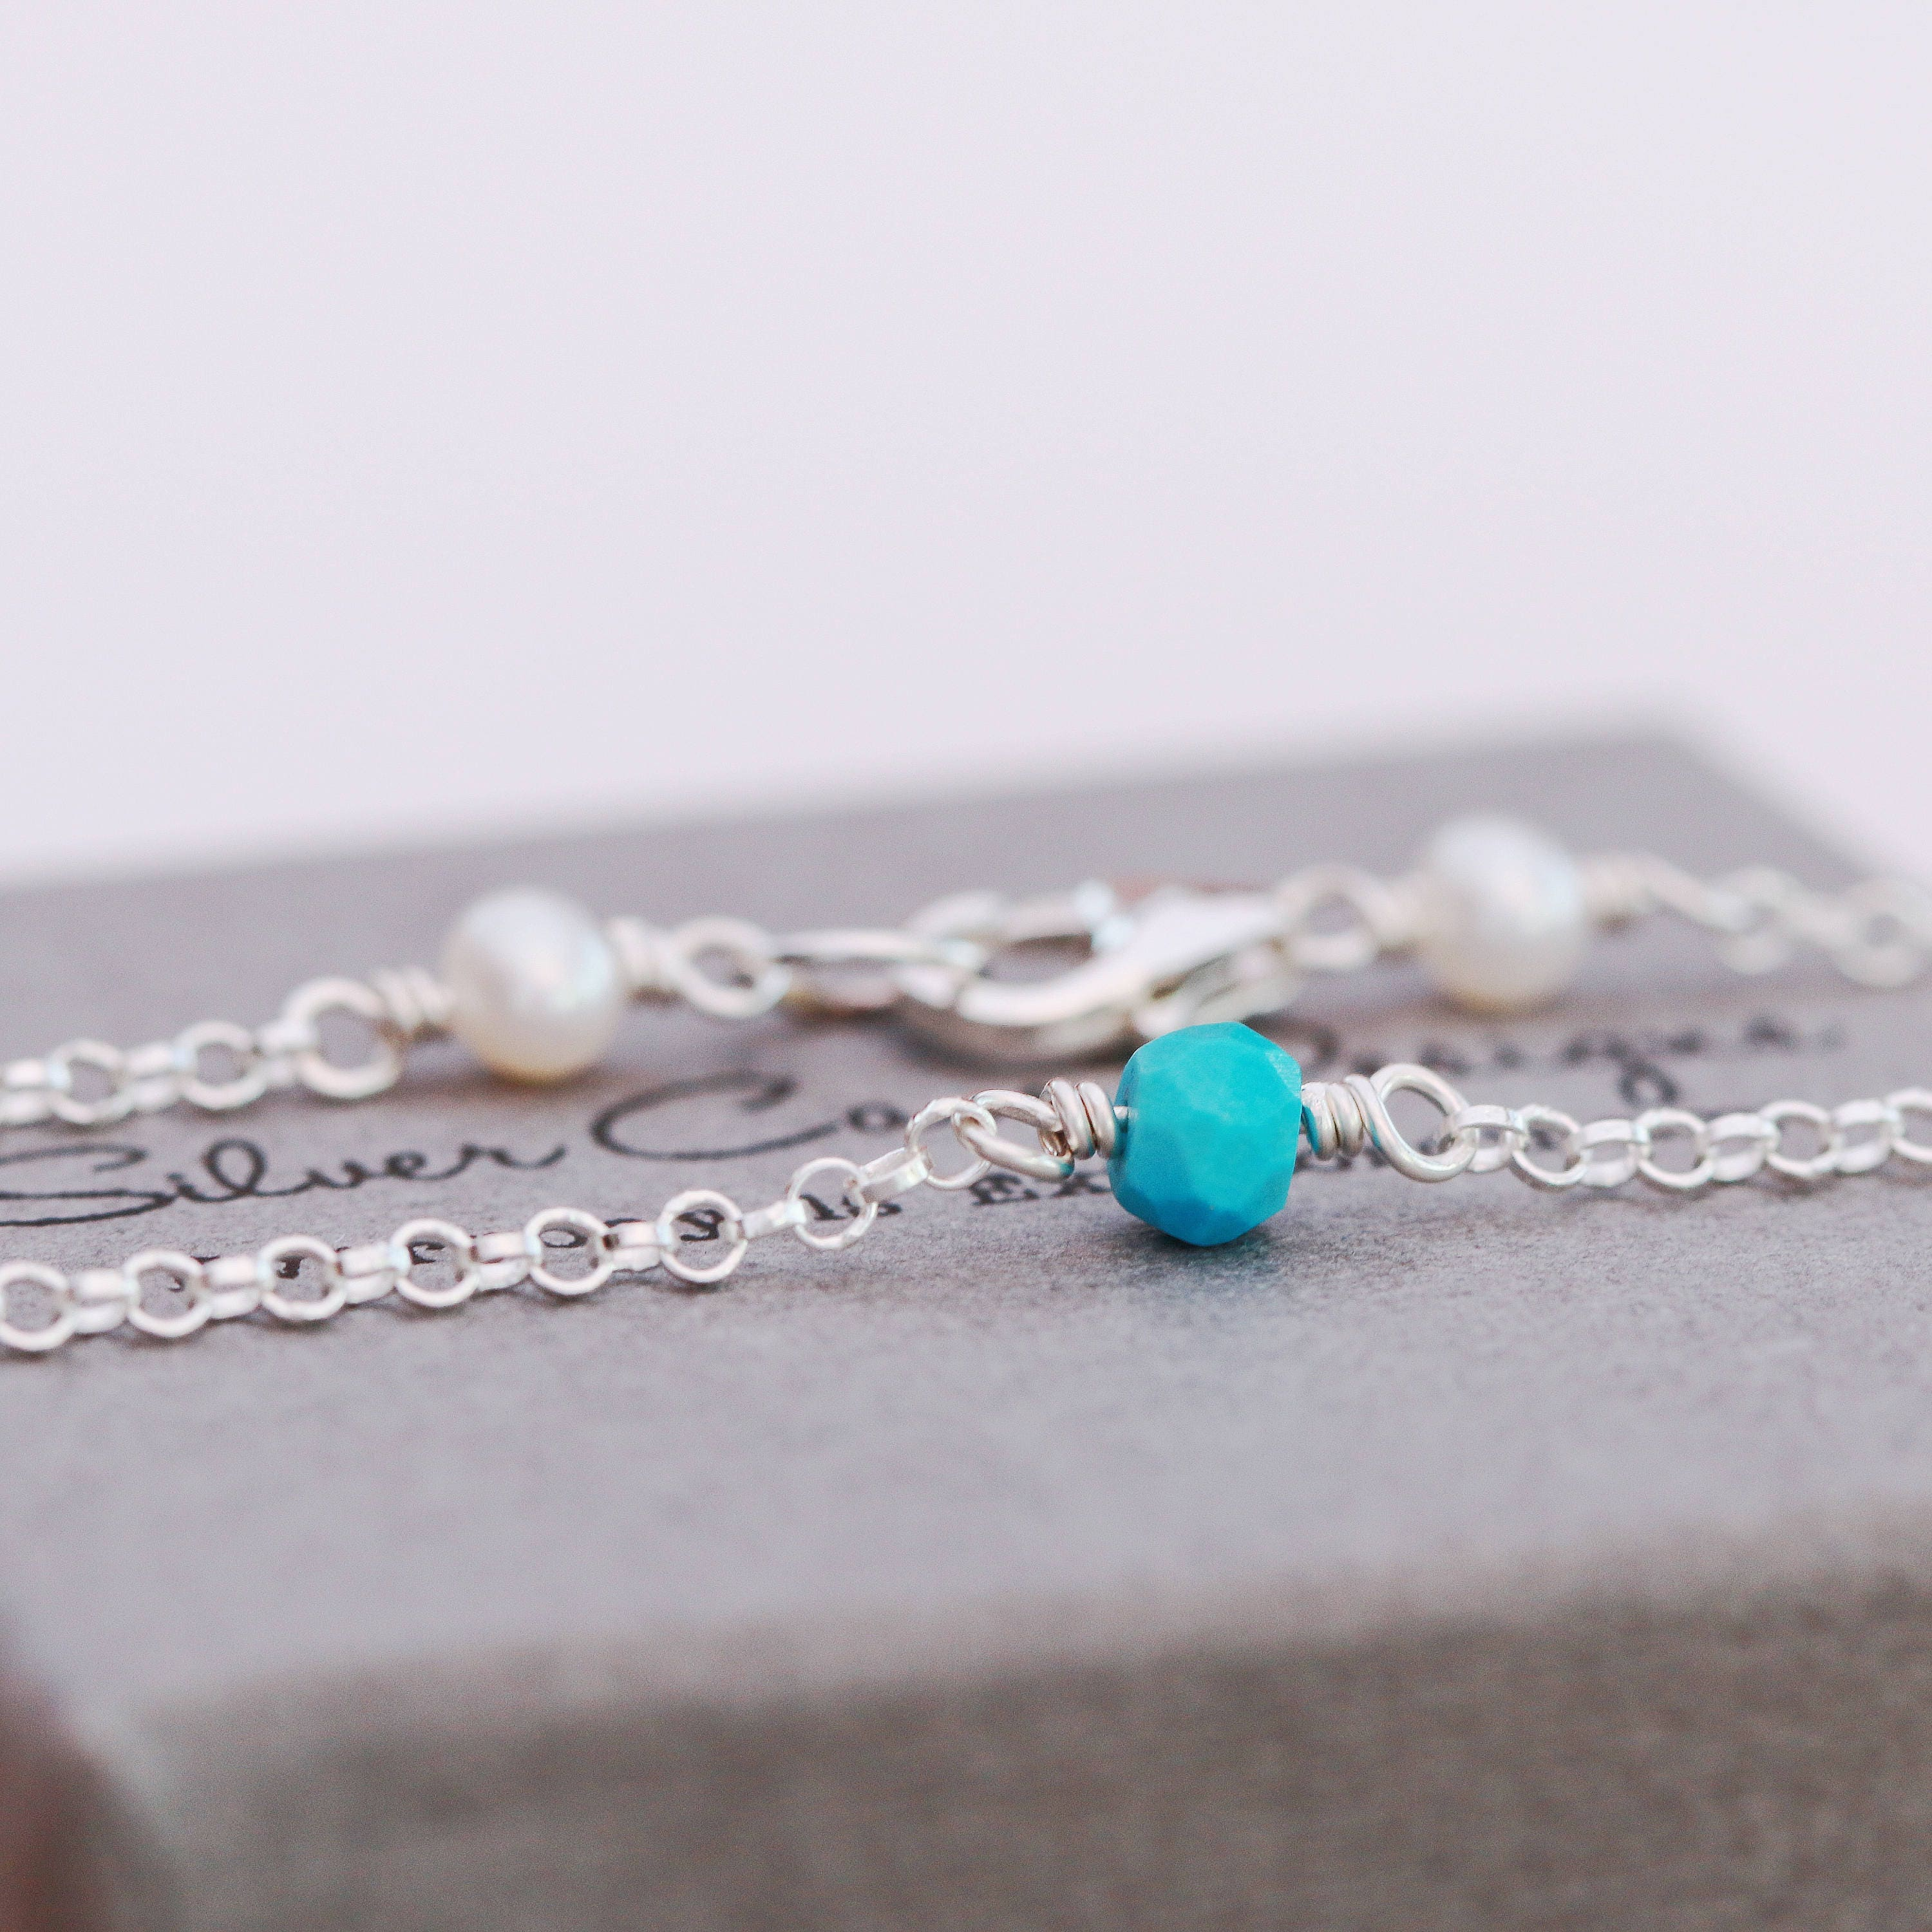 il and evbe ankletturquoise sterling anklet birthstone turquoise pearls gallery listing photo silver fullxfull